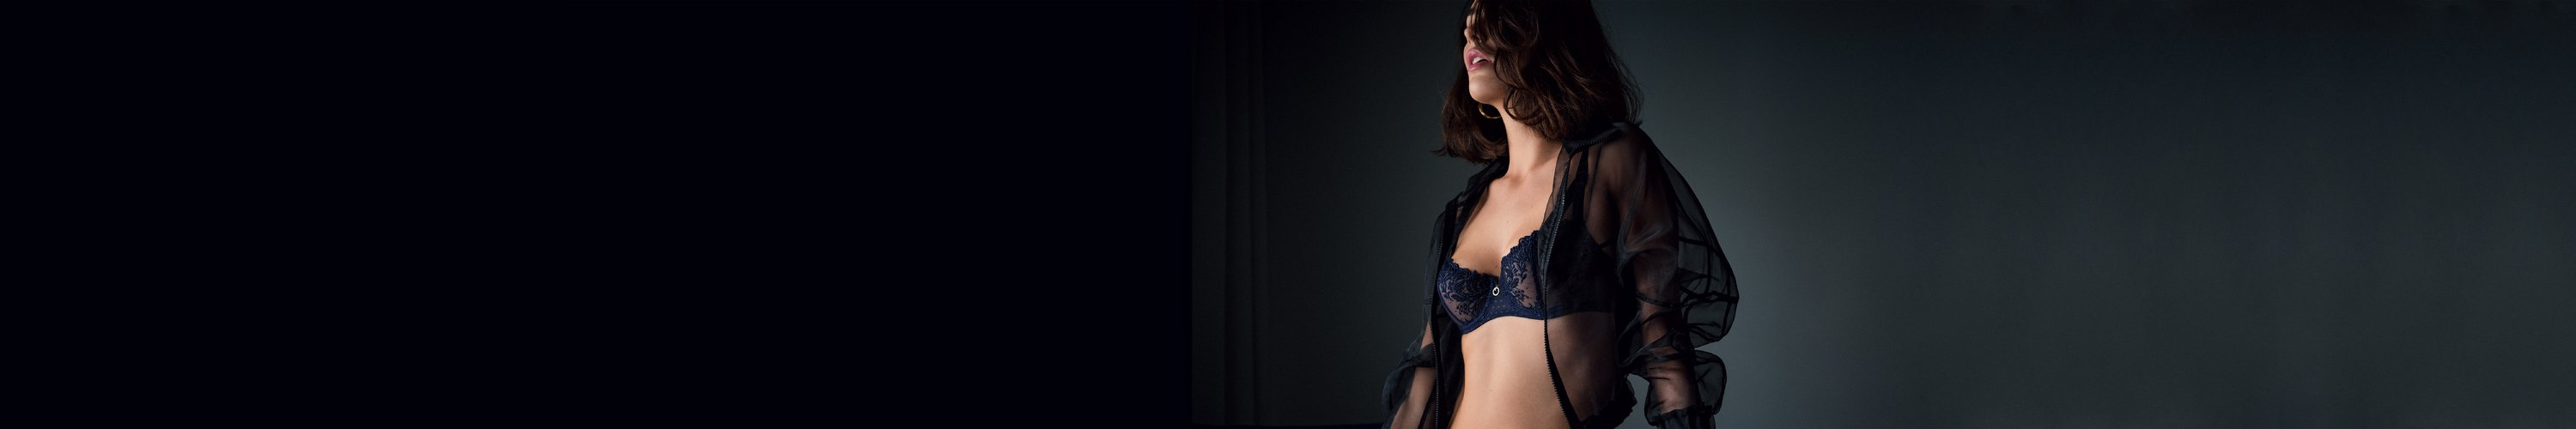 Chic & erotic lingerie